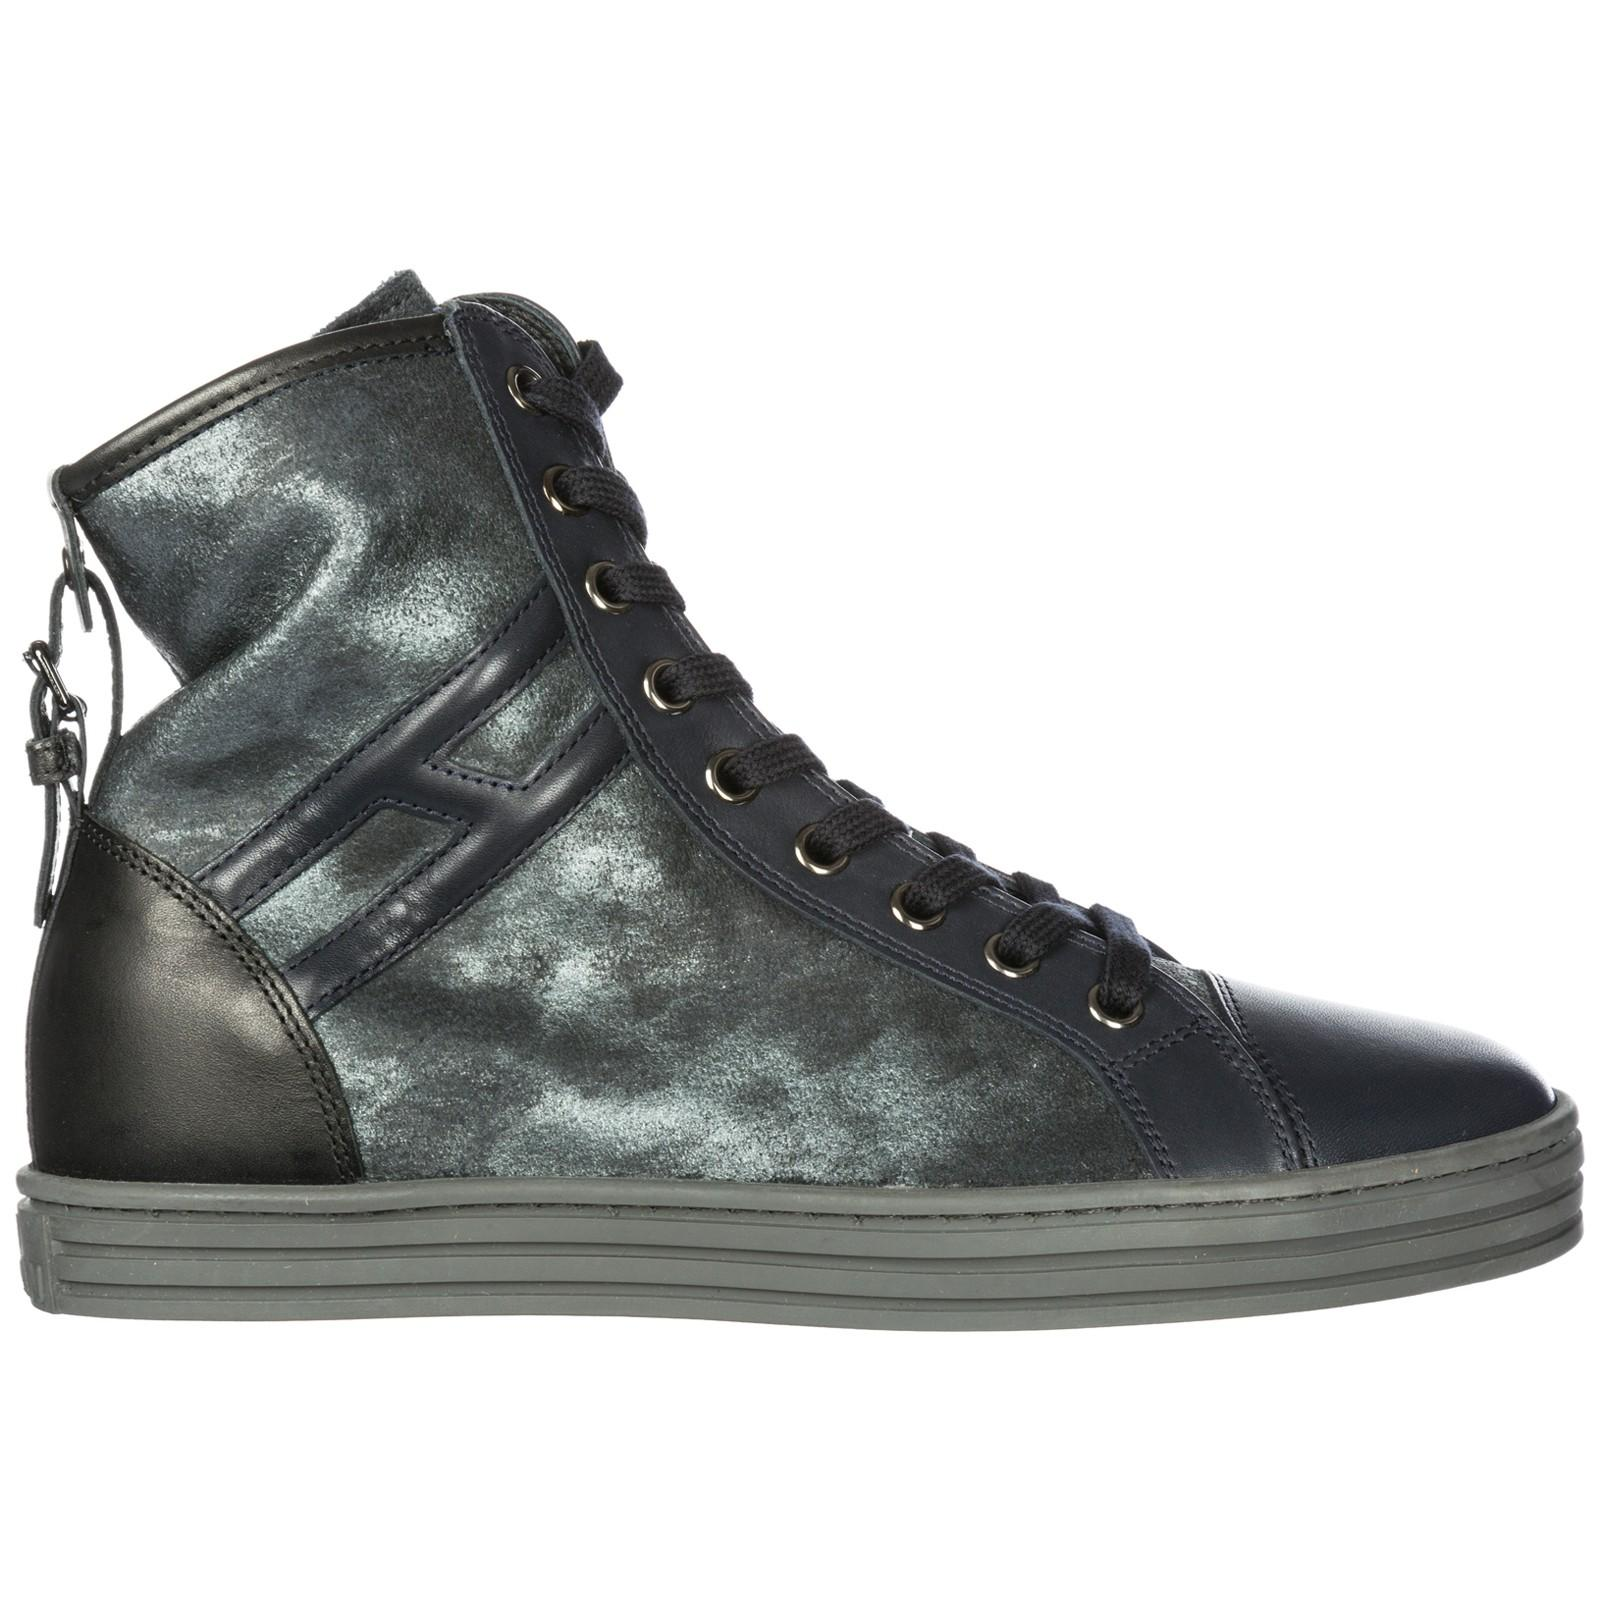 db36422f4 Hogan Rebel Women's Shoes High Top Leather Trainers Sneakers R182 In Blue